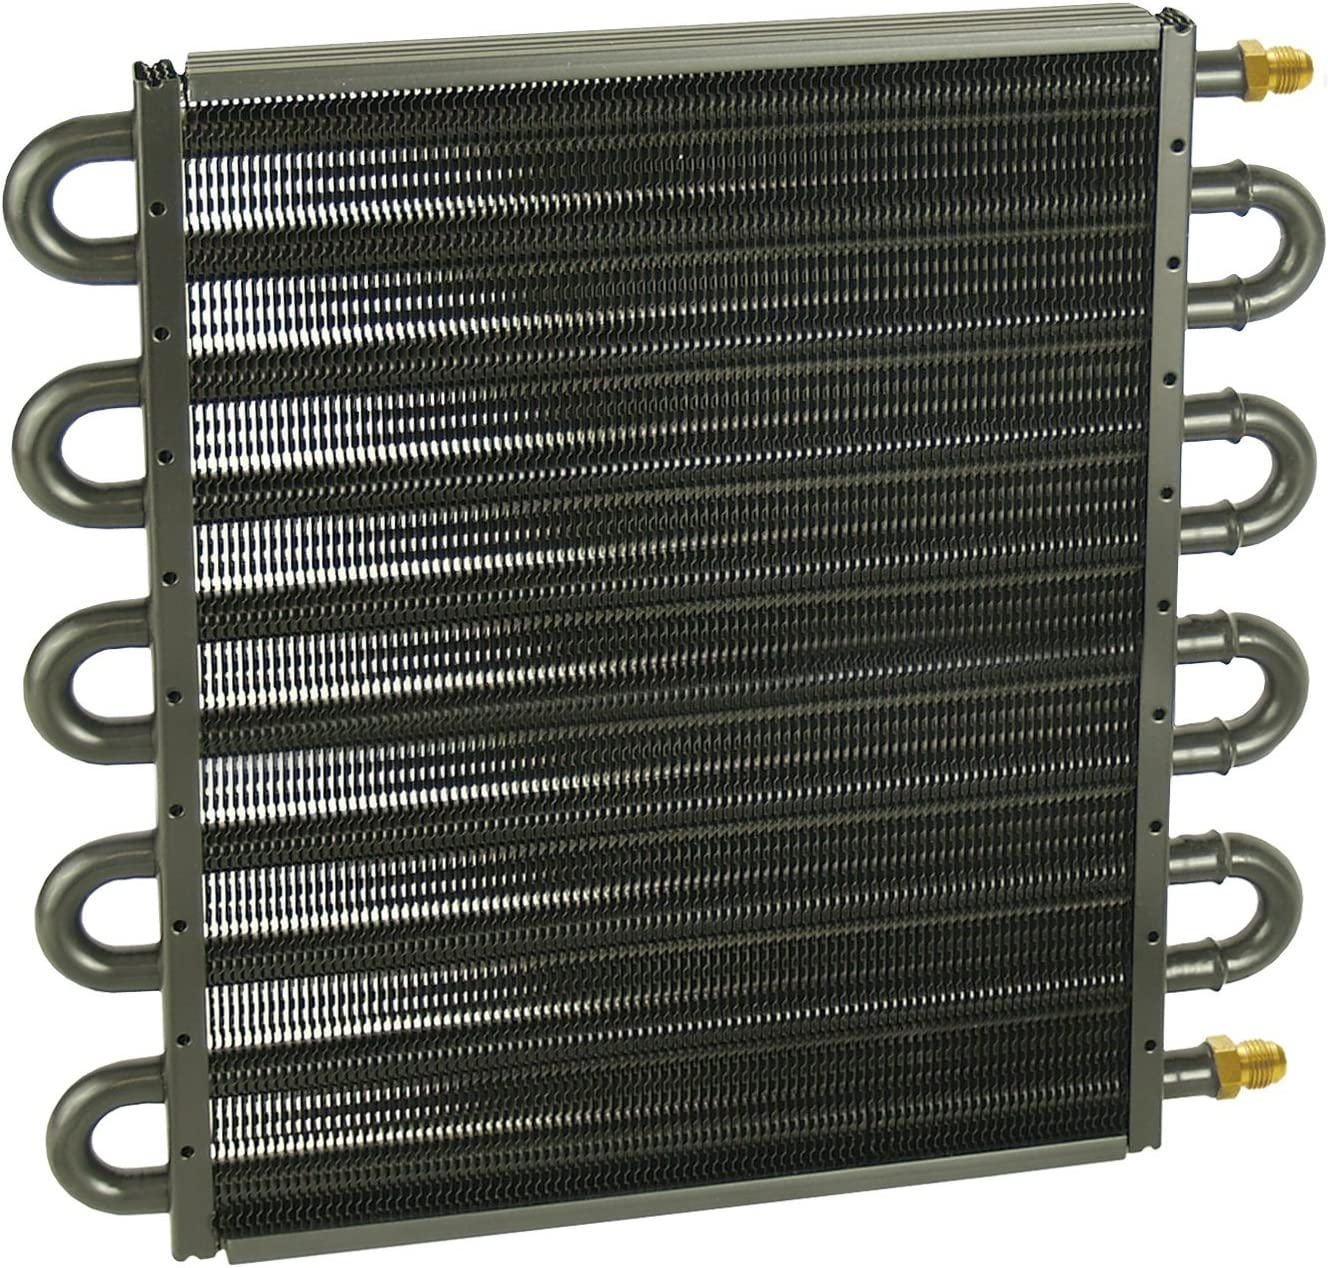 Derale 13318 Series 7000 Tube and Fin Cooler Core